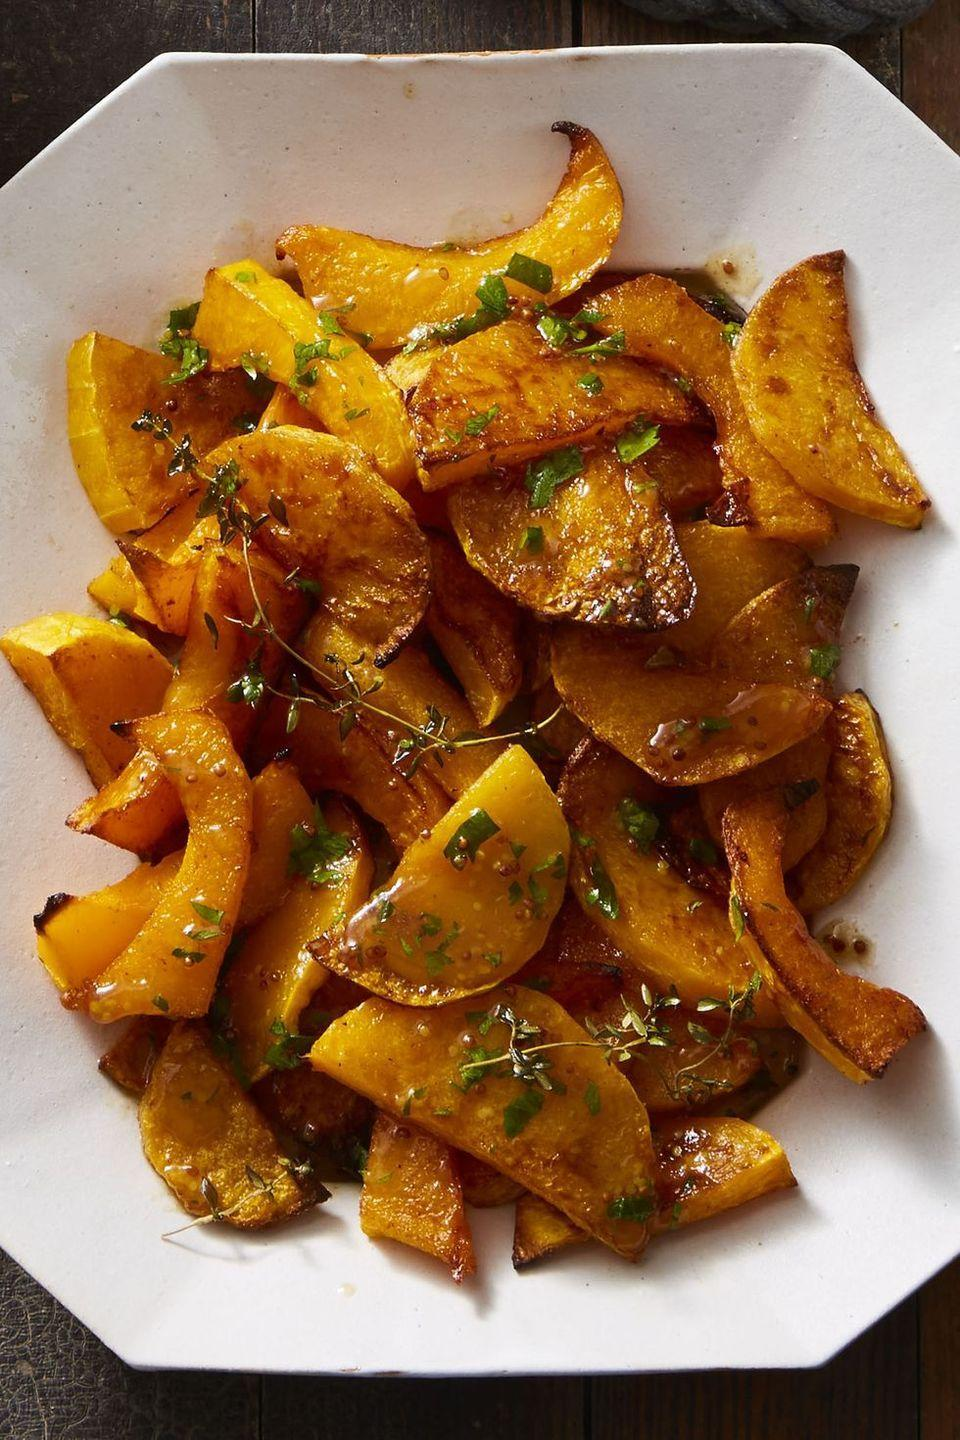 """<p>This vegan apple cider dressing is so addictive, you're going to want to make extra to drizzle over <em>everything</em> on your Thanksgiving table.</p><p><em><a href=""""https://www.goodhousekeeping.com/food-recipes/easy/a46622/spice-roasted-butternut-squash-with-cider-vinaigrette-recipe/"""" rel=""""nofollow noopener"""" target=""""_blank"""" data-ylk=""""slk:Get the recipe for Spice-Roasted Butternut Squash with Cider Vinaigrette »"""" class=""""link rapid-noclick-resp"""">Get the recipe for Spice-Roasted Butternut Squash with Cider Vinaigrette »</a></em></p>"""